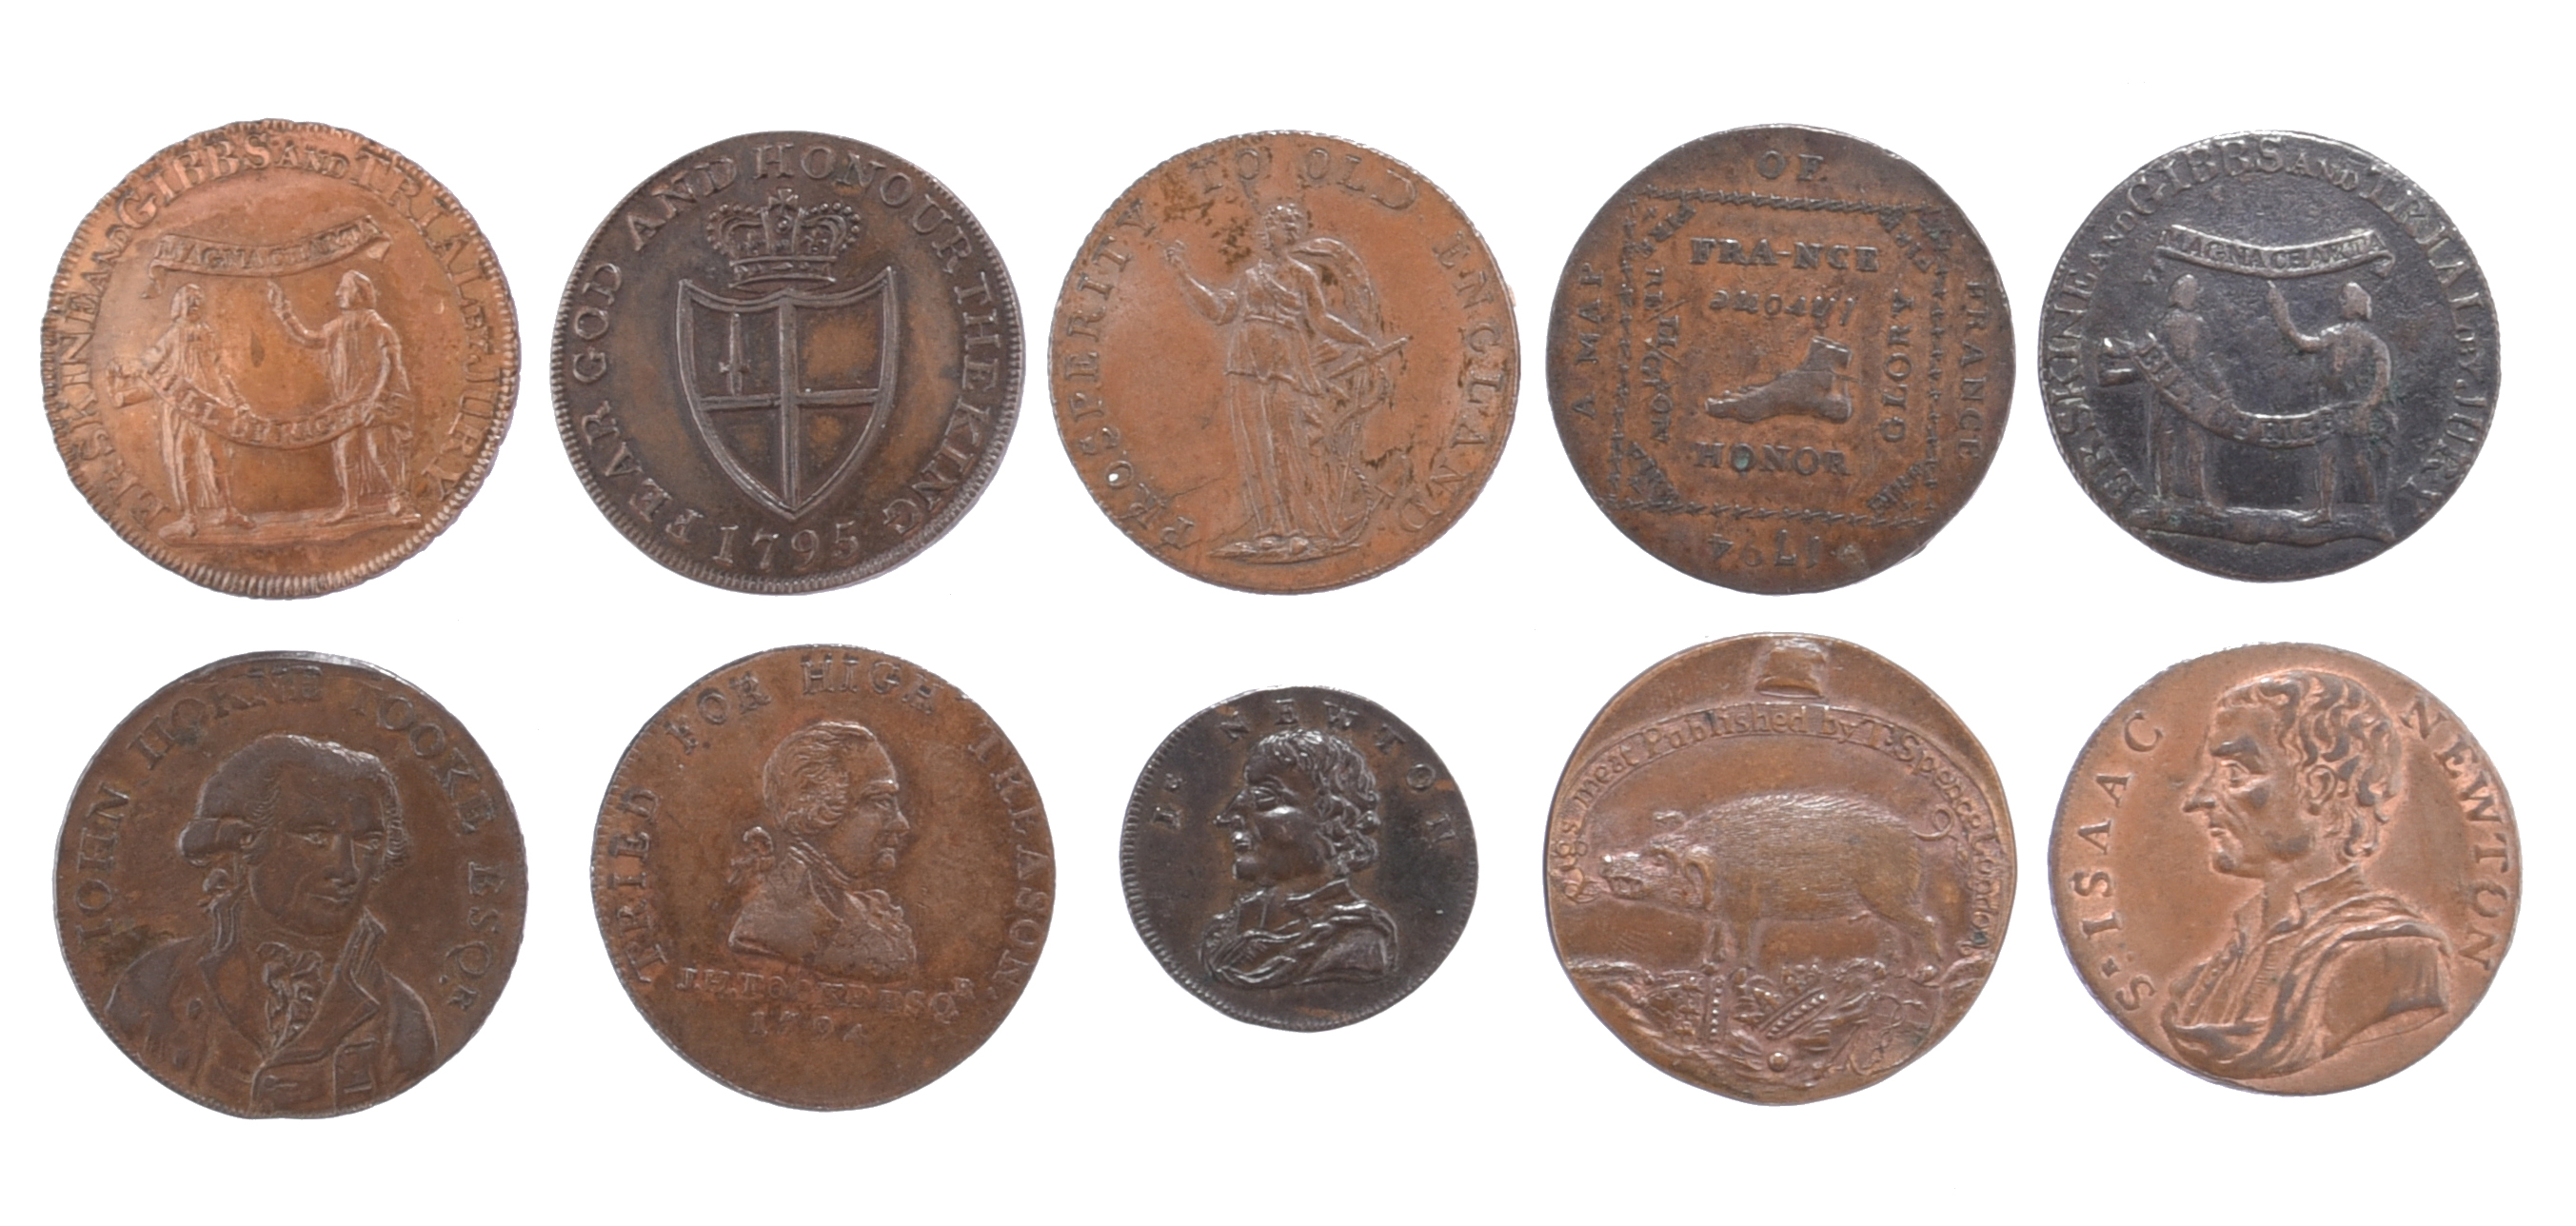 Eighteenth century halfpenny tokens, Middlesex, including: Erskine & Gibbs, barristers holding